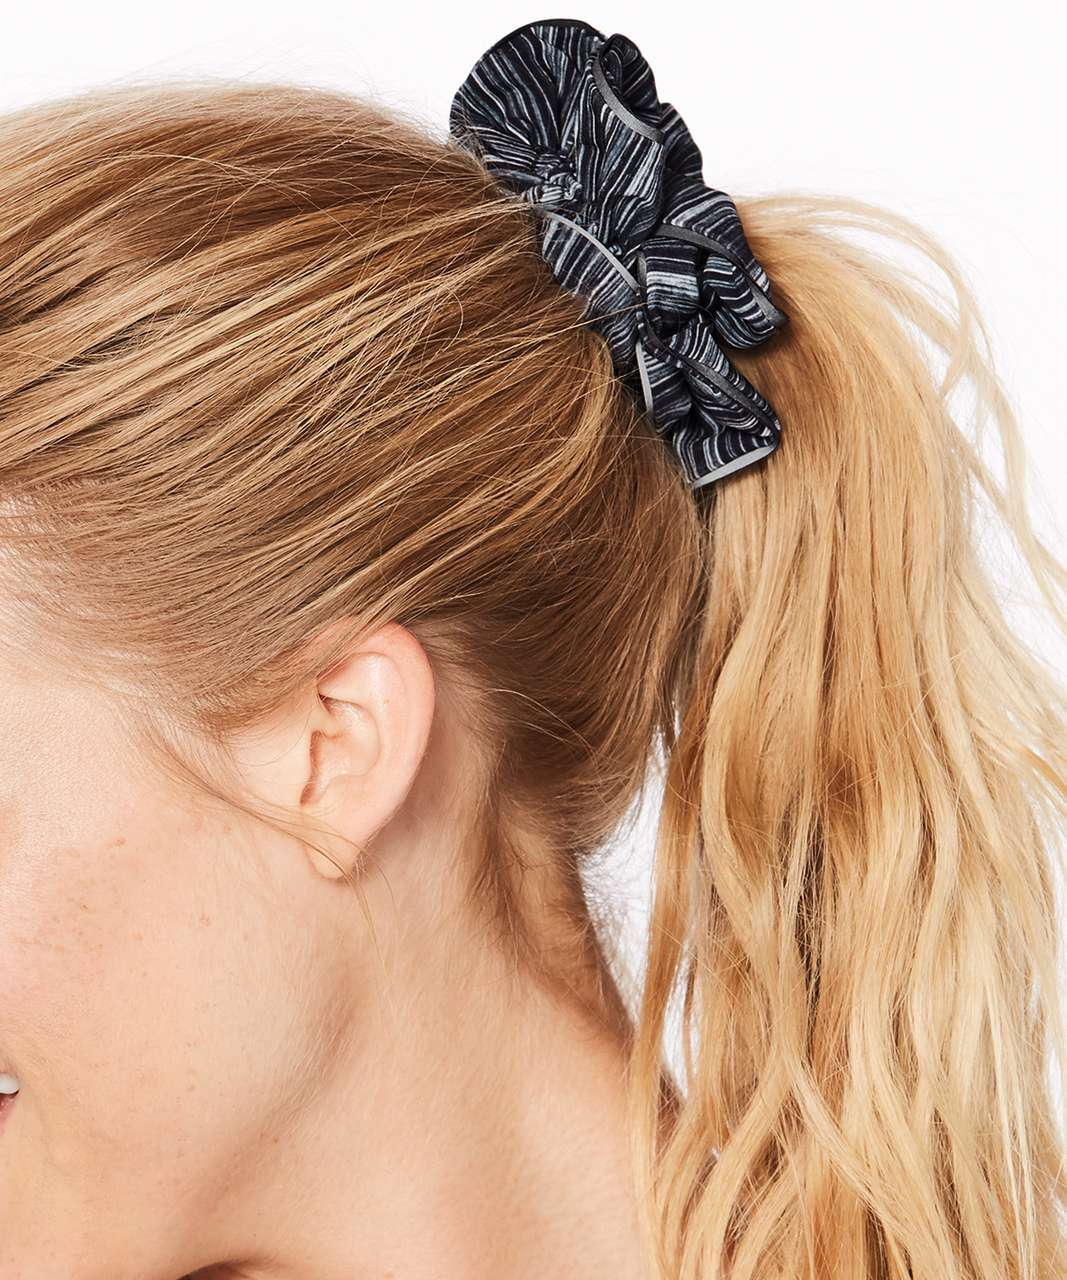 Lululemon Light Locks Scrunchie - Low Tide Alpine White Black